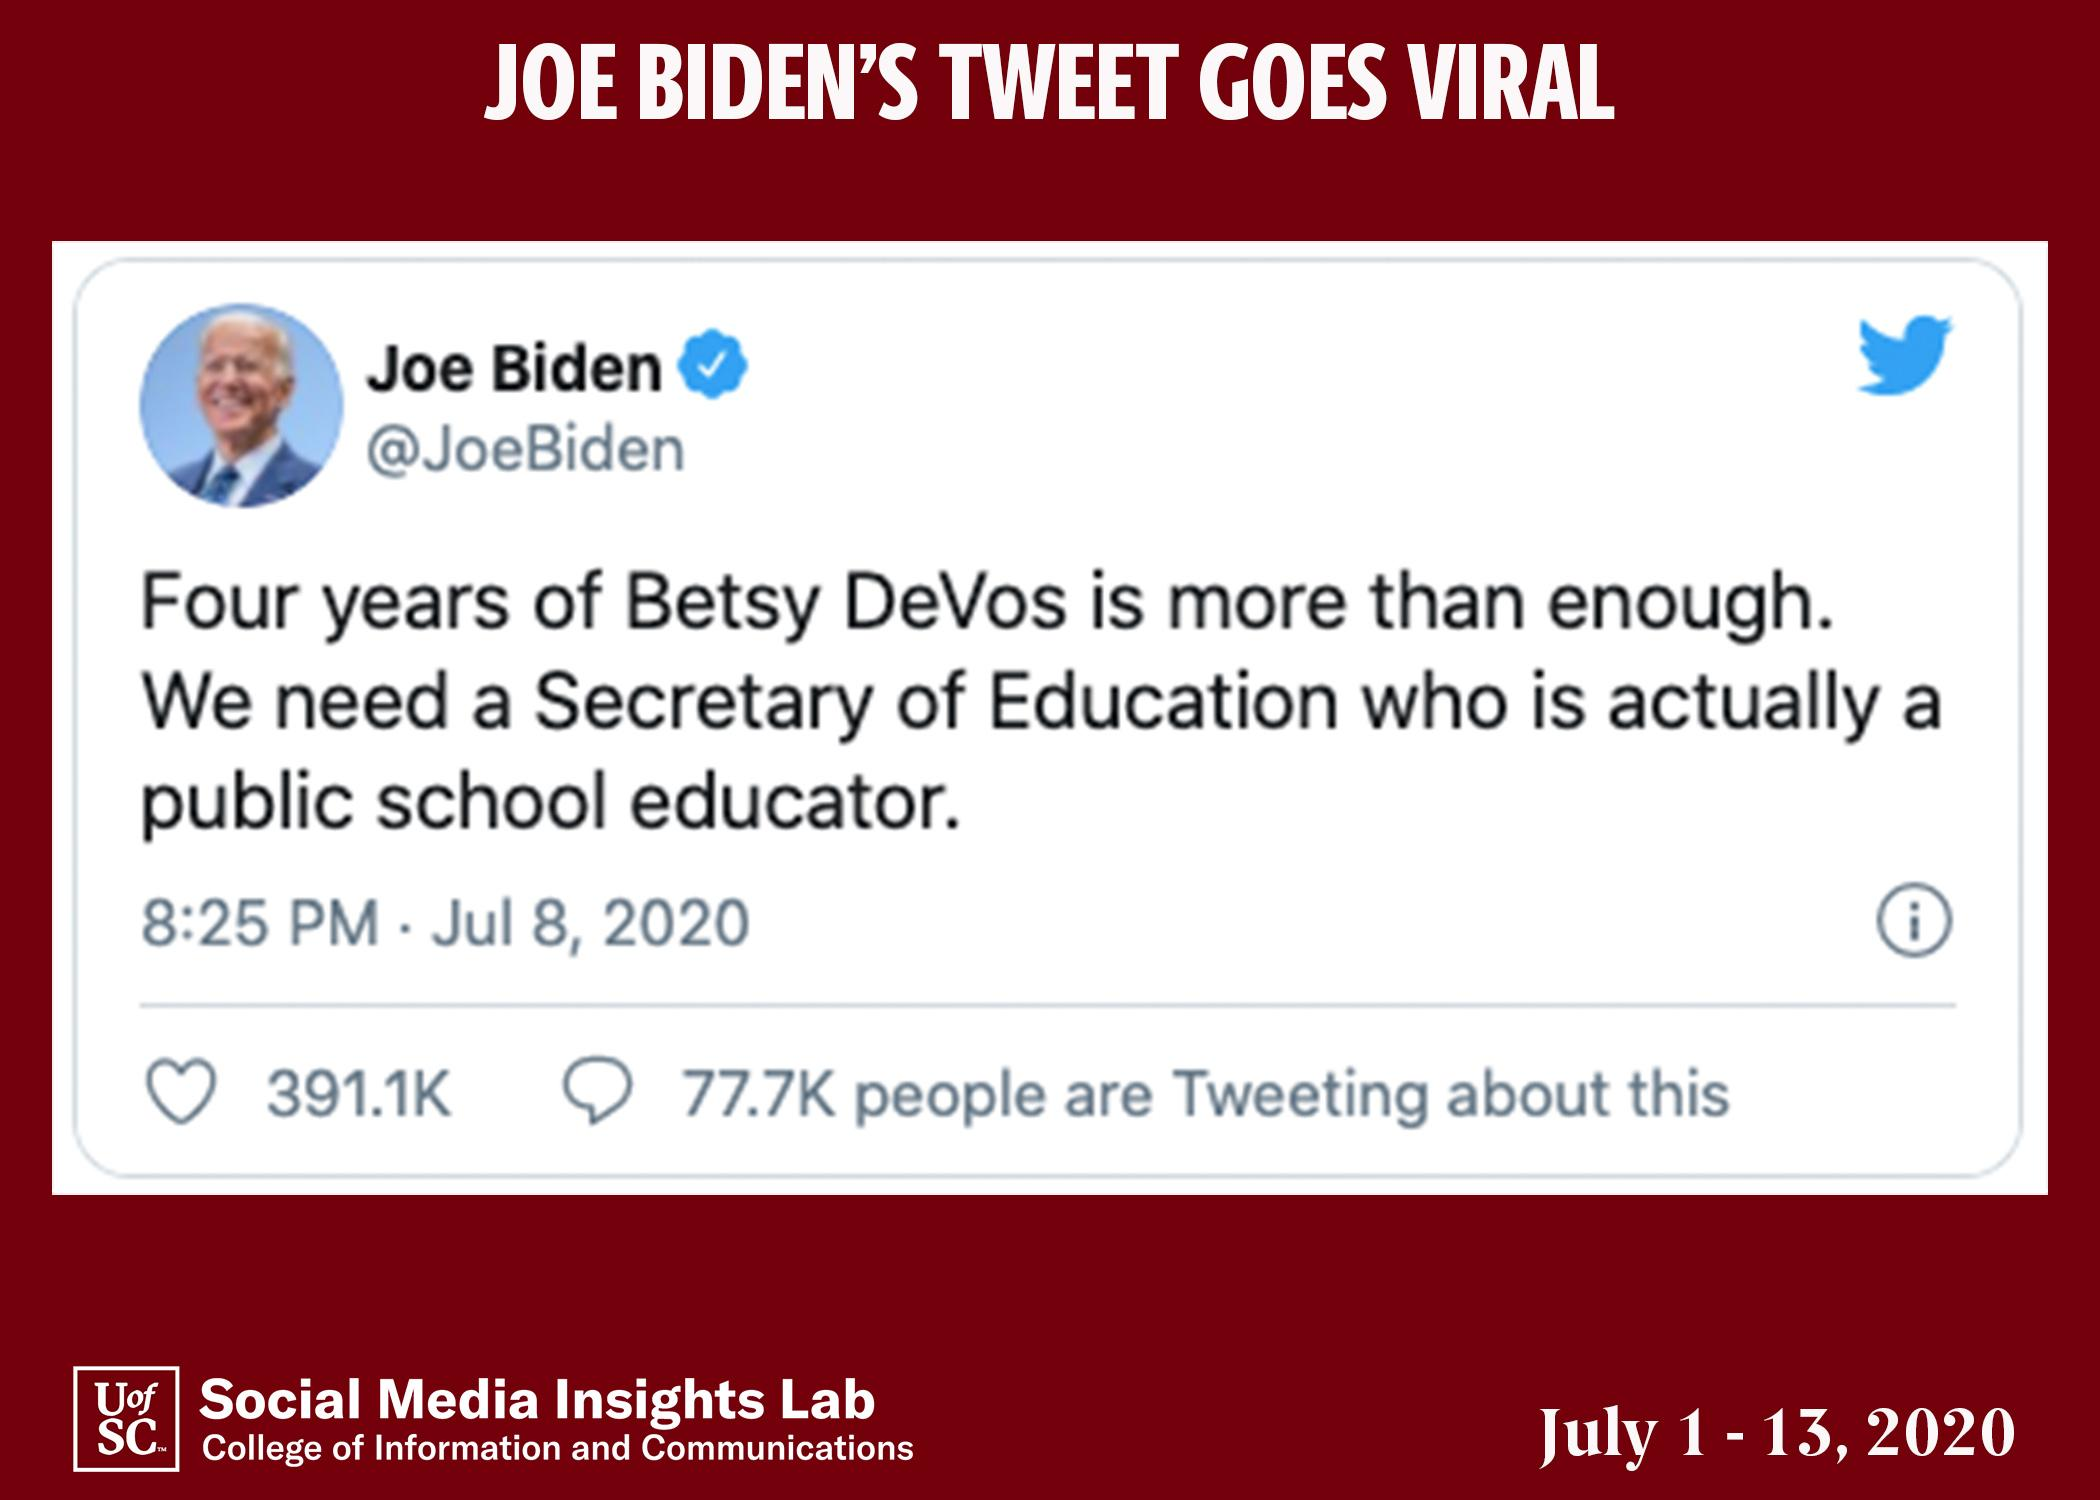 The top influencer in these conversations, both in South Carolina and nationally, is Democratic presidential candidate Joe Biden, who used Twitter to attack Education Secretary Betsy DeVos.